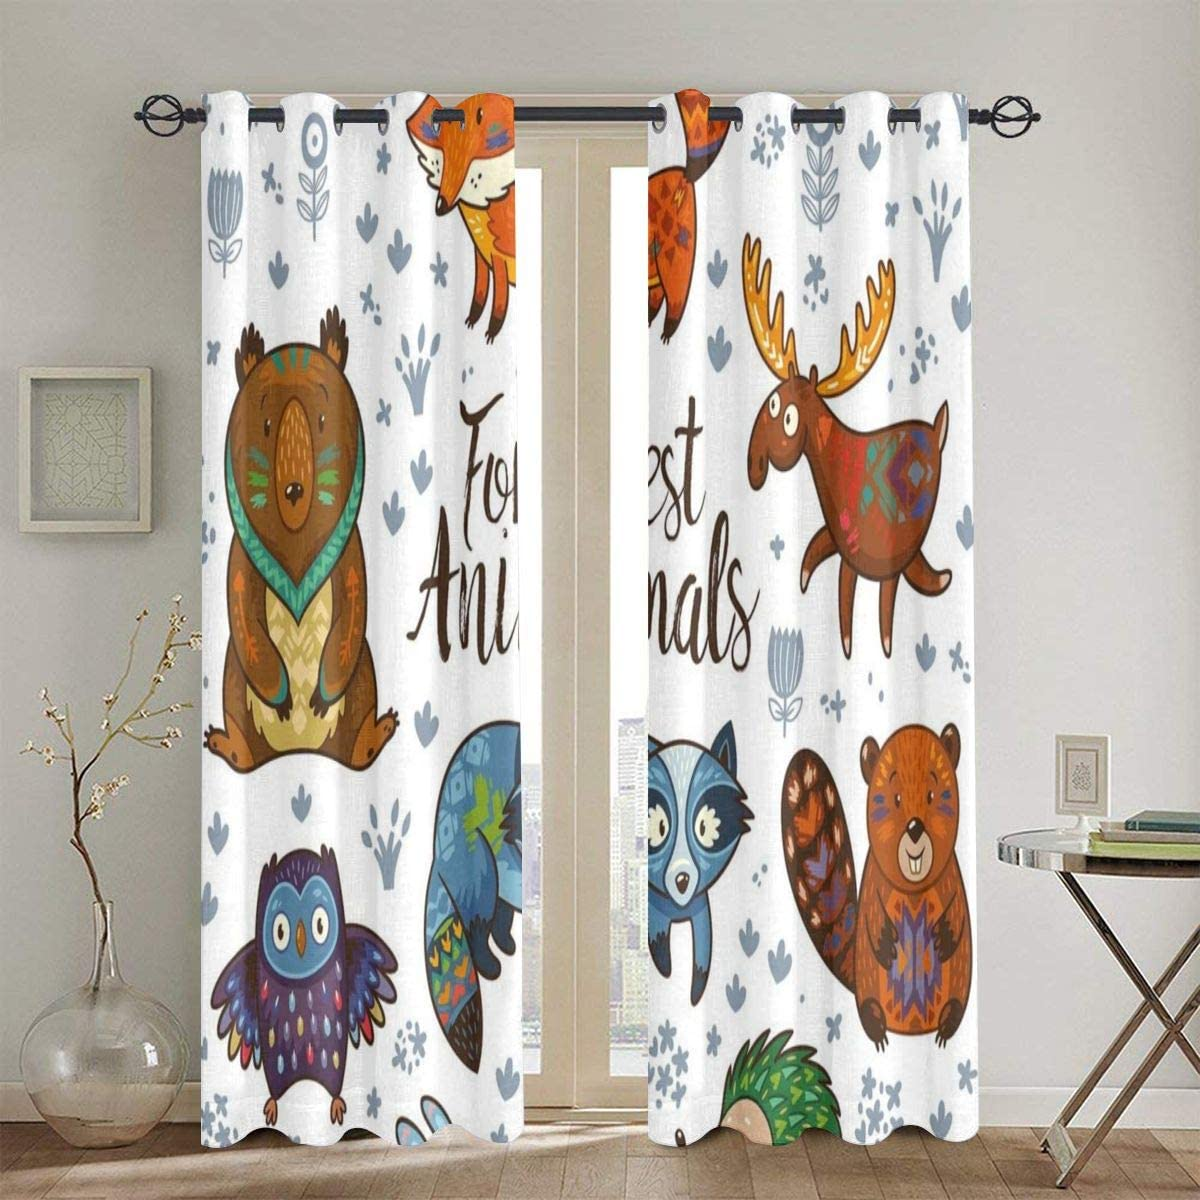 Curtains Woodland Animals Tribal Nature Elements Kids Room Nursery Themed Art Print 2 Panel Set Living Room Bedroom Window Drapes Amazon Co Uk Kitchen Home